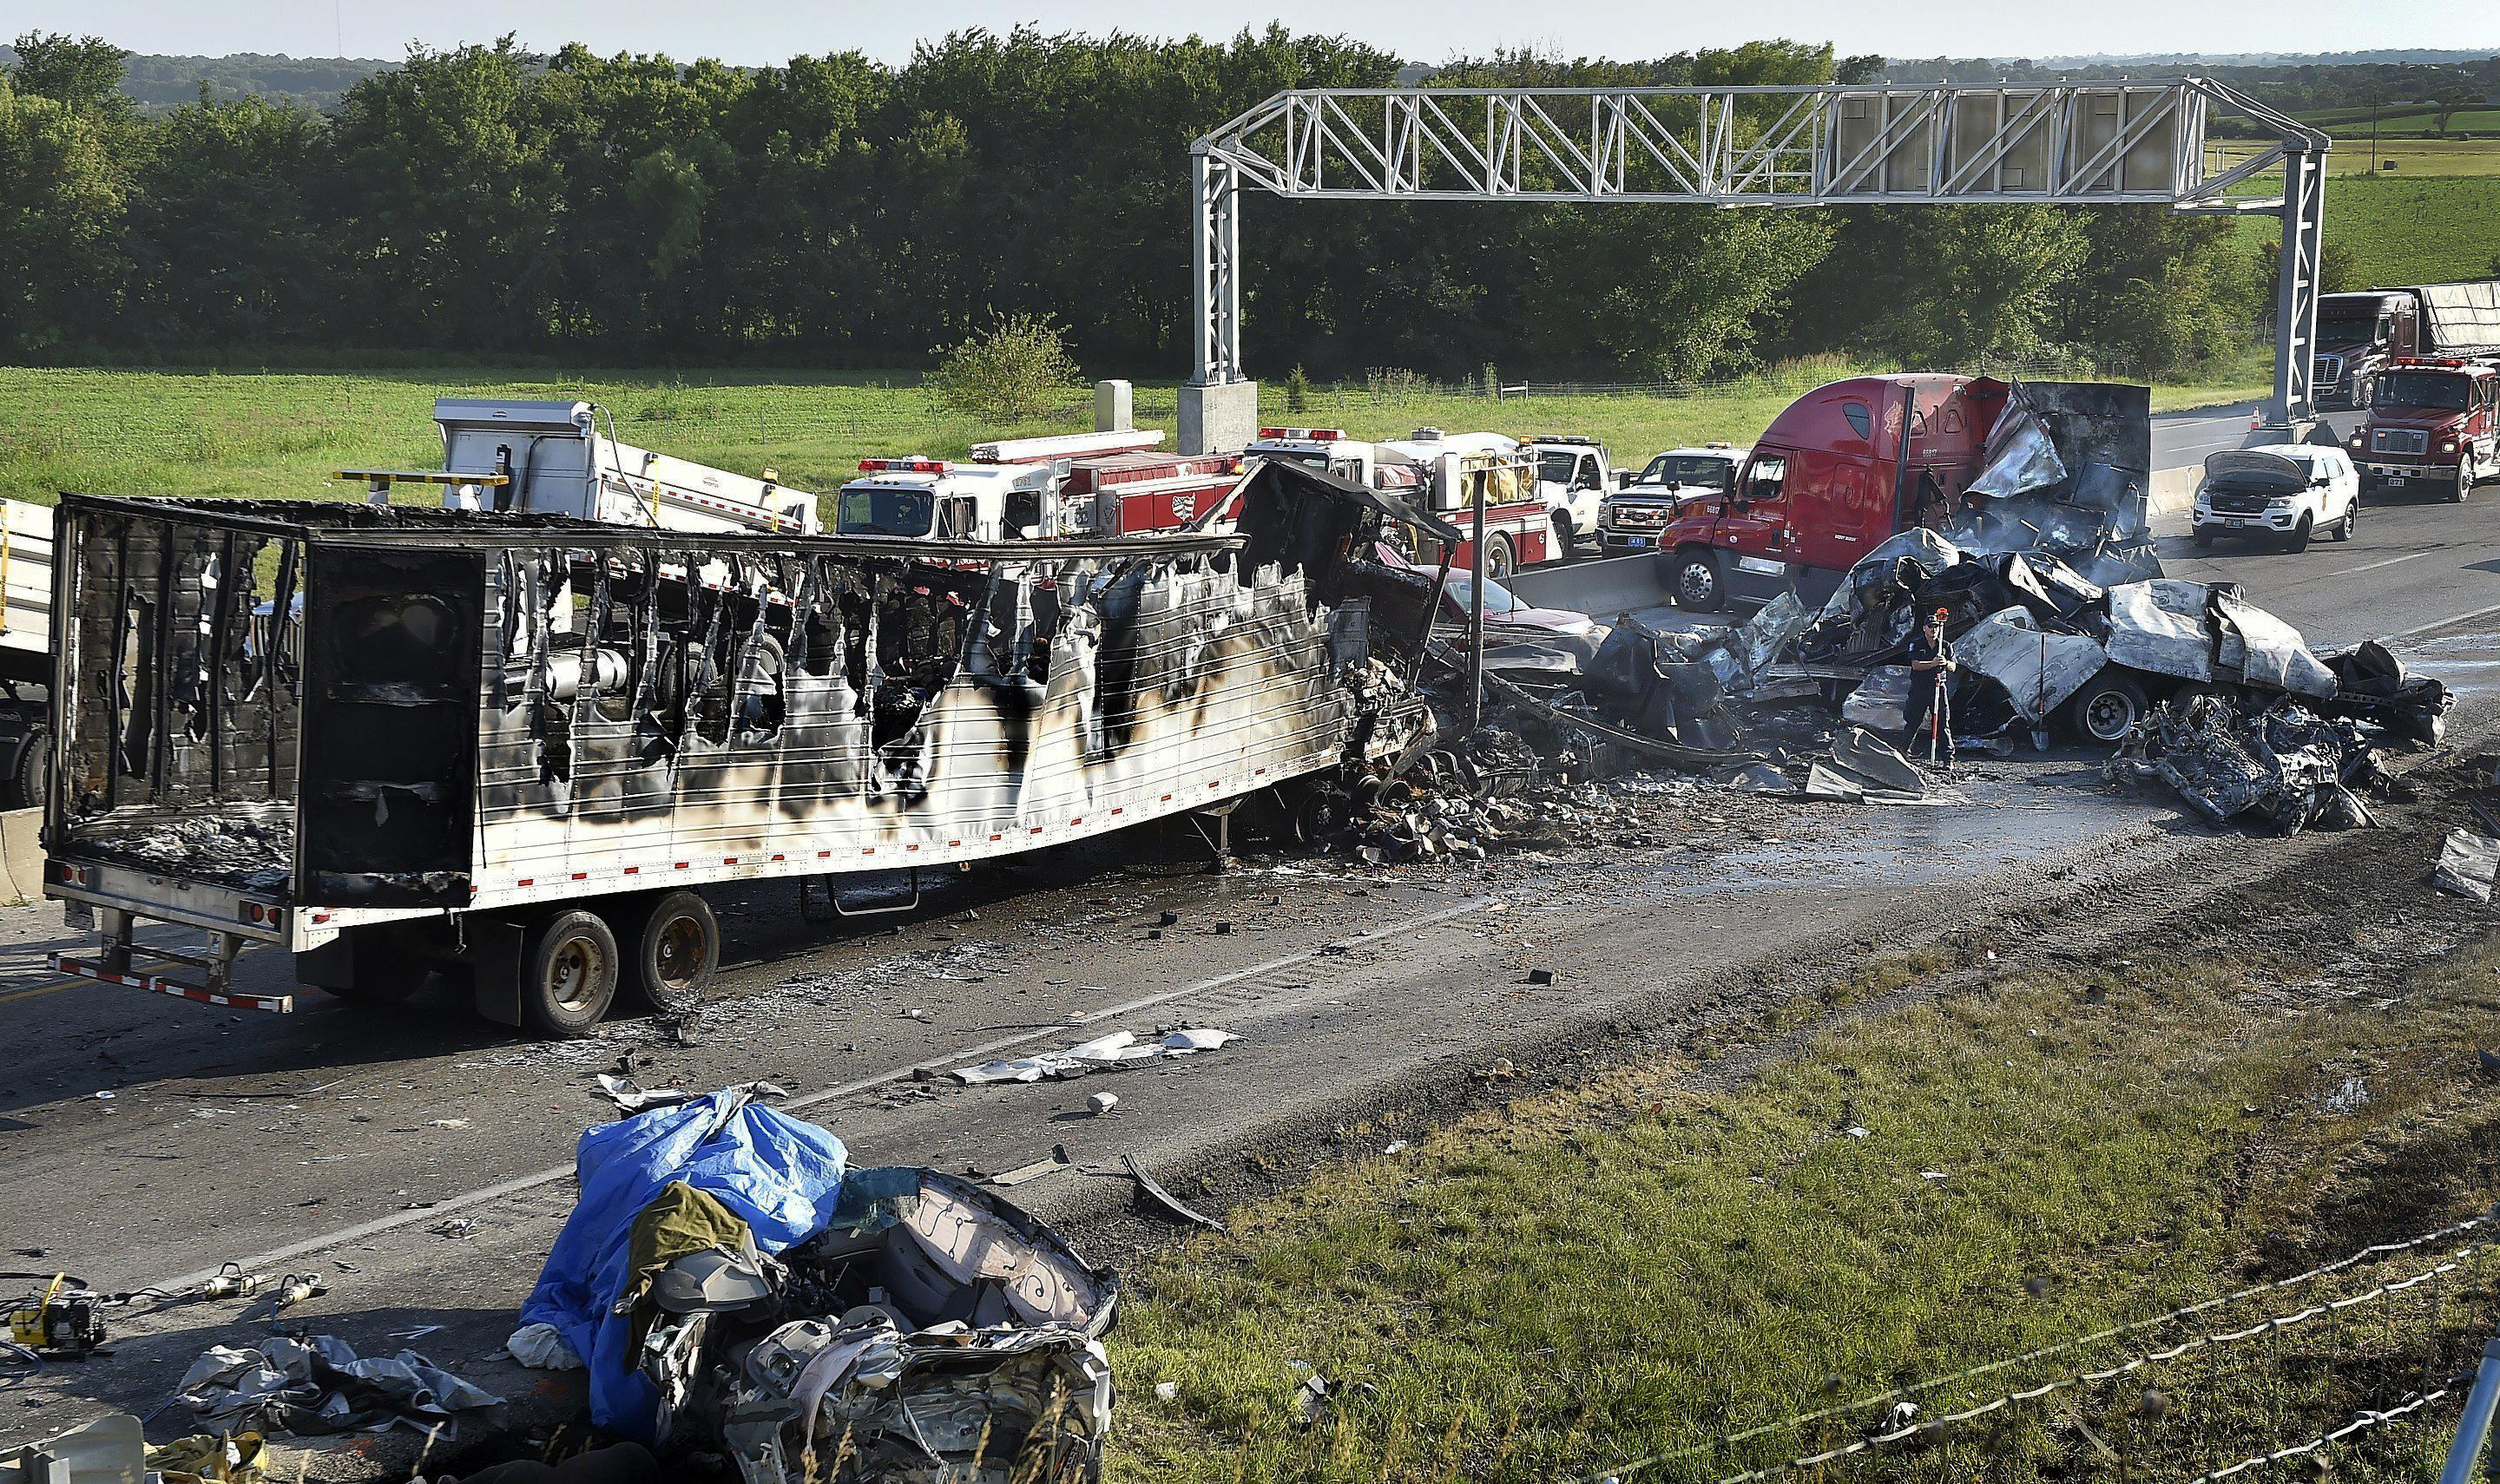 Five die in fiery, six-vehicle pileup on I-70 in Kansas | The